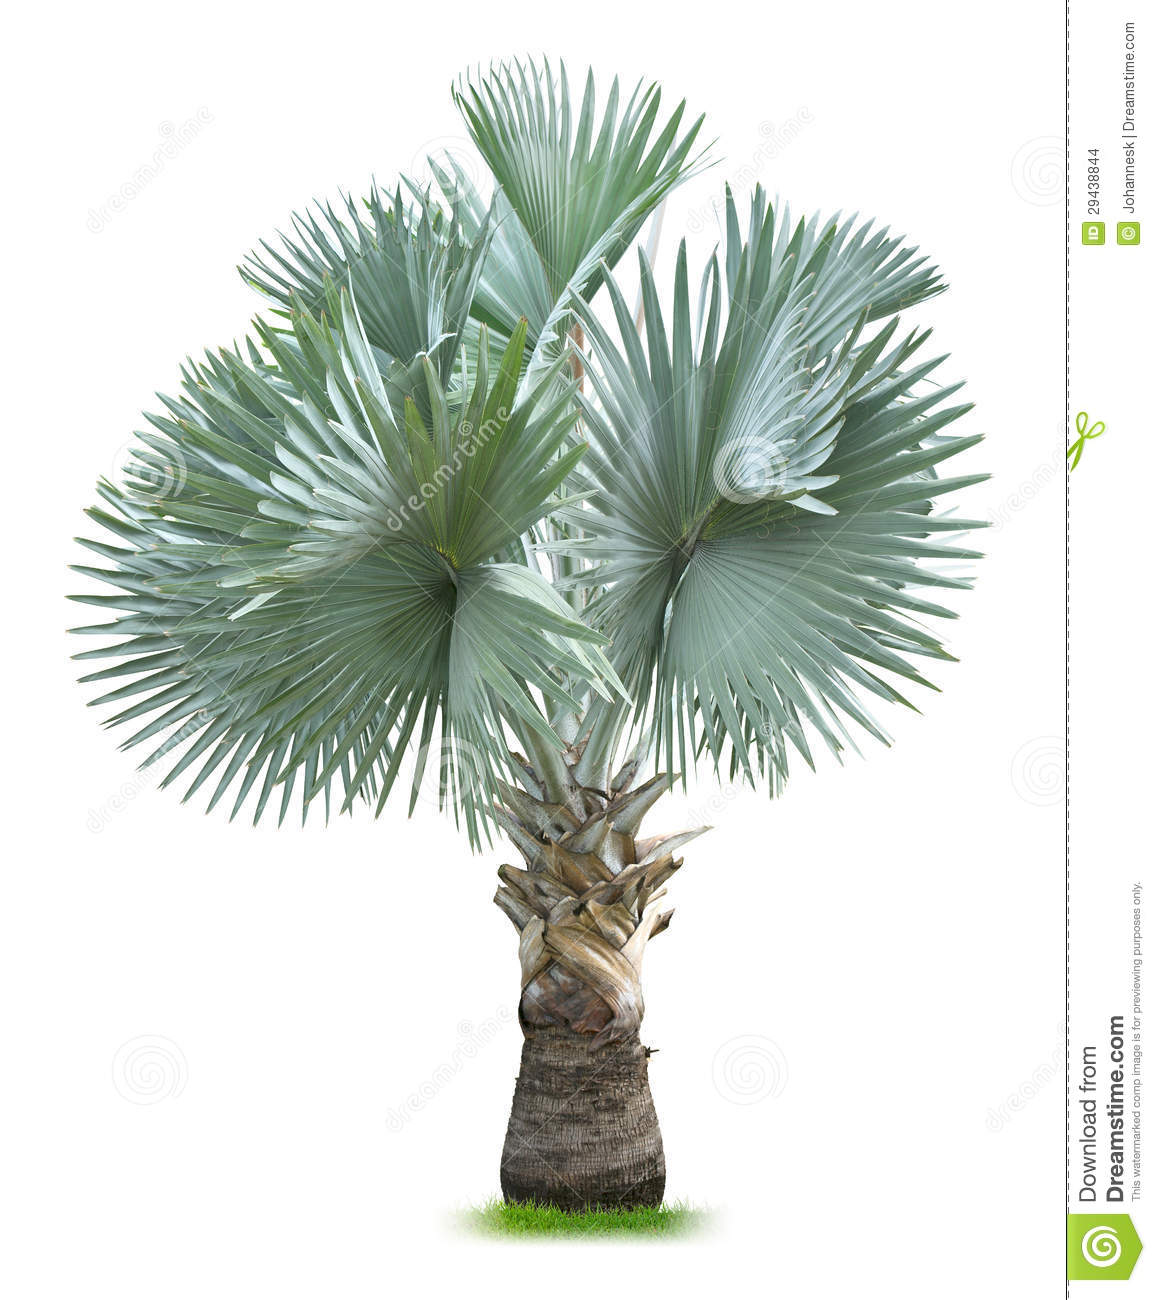 how to sell palm trees